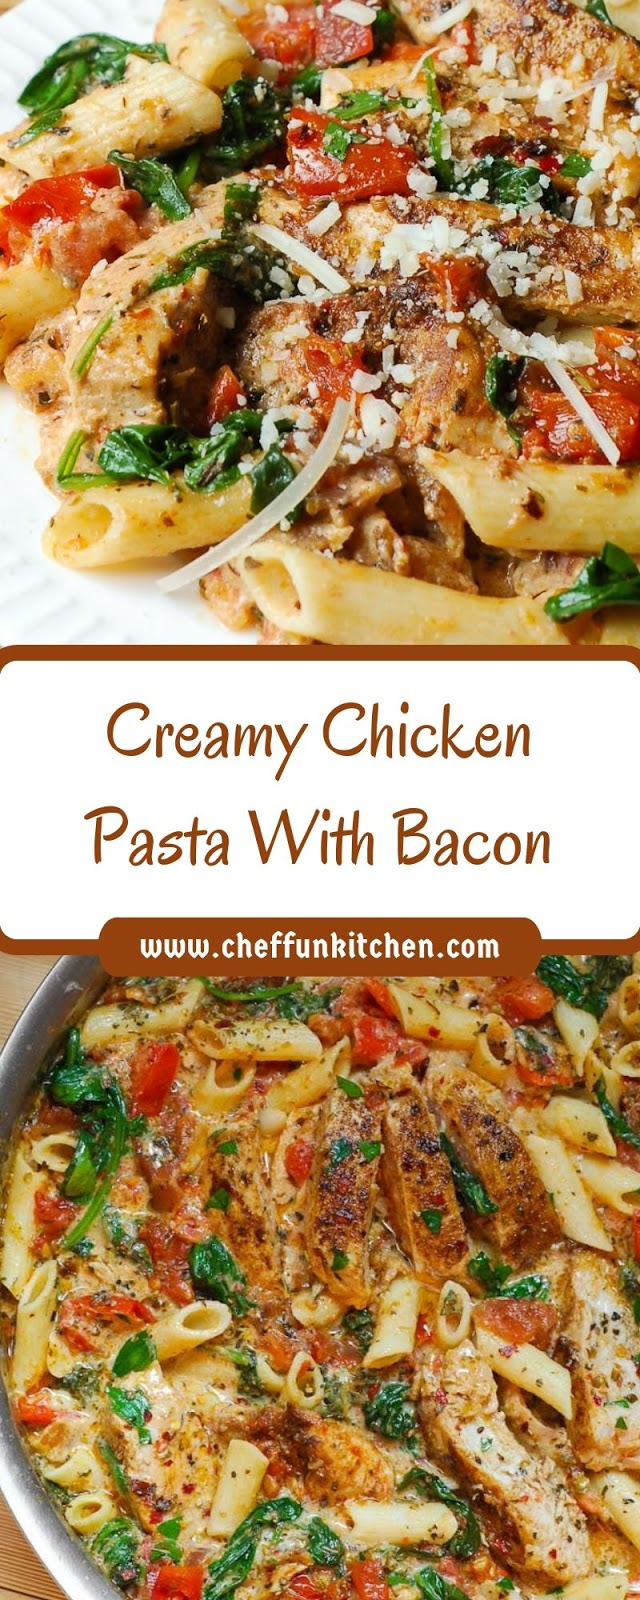 Creamy Chicken Pasta With Bacon